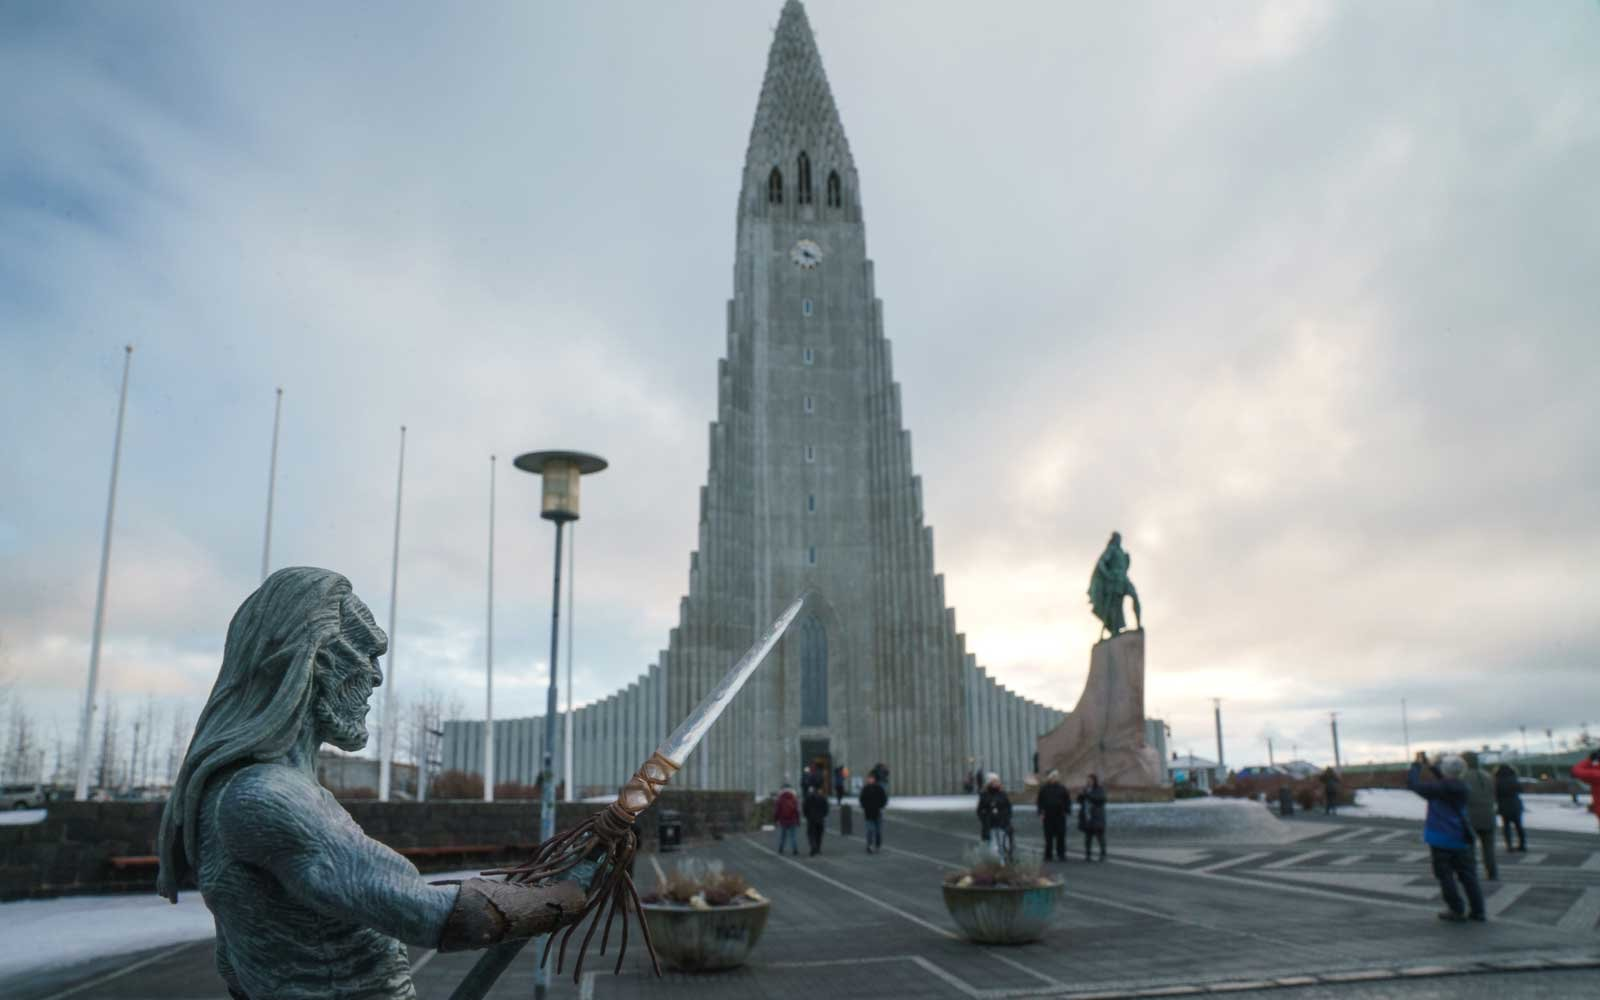 White Walker figure in front of Iceland's most famous church